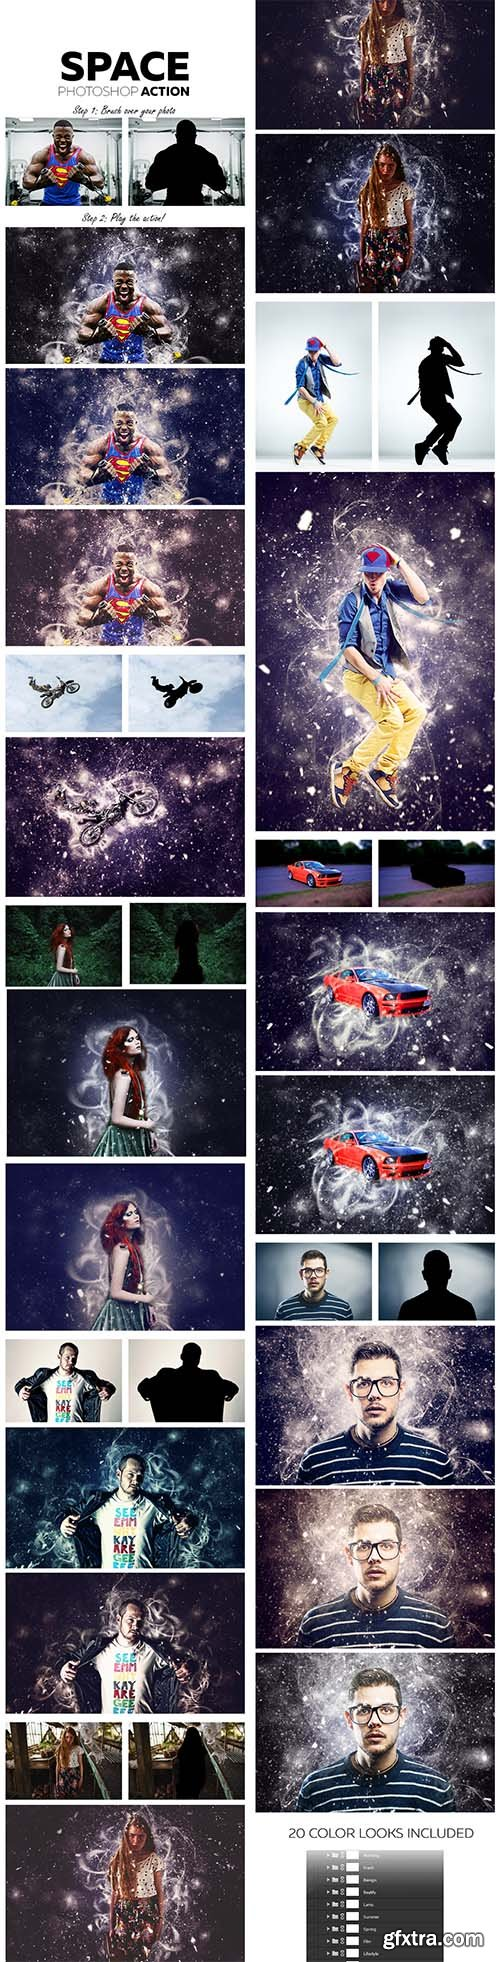 GraphicRiver - Space Photoshop Action 12165749